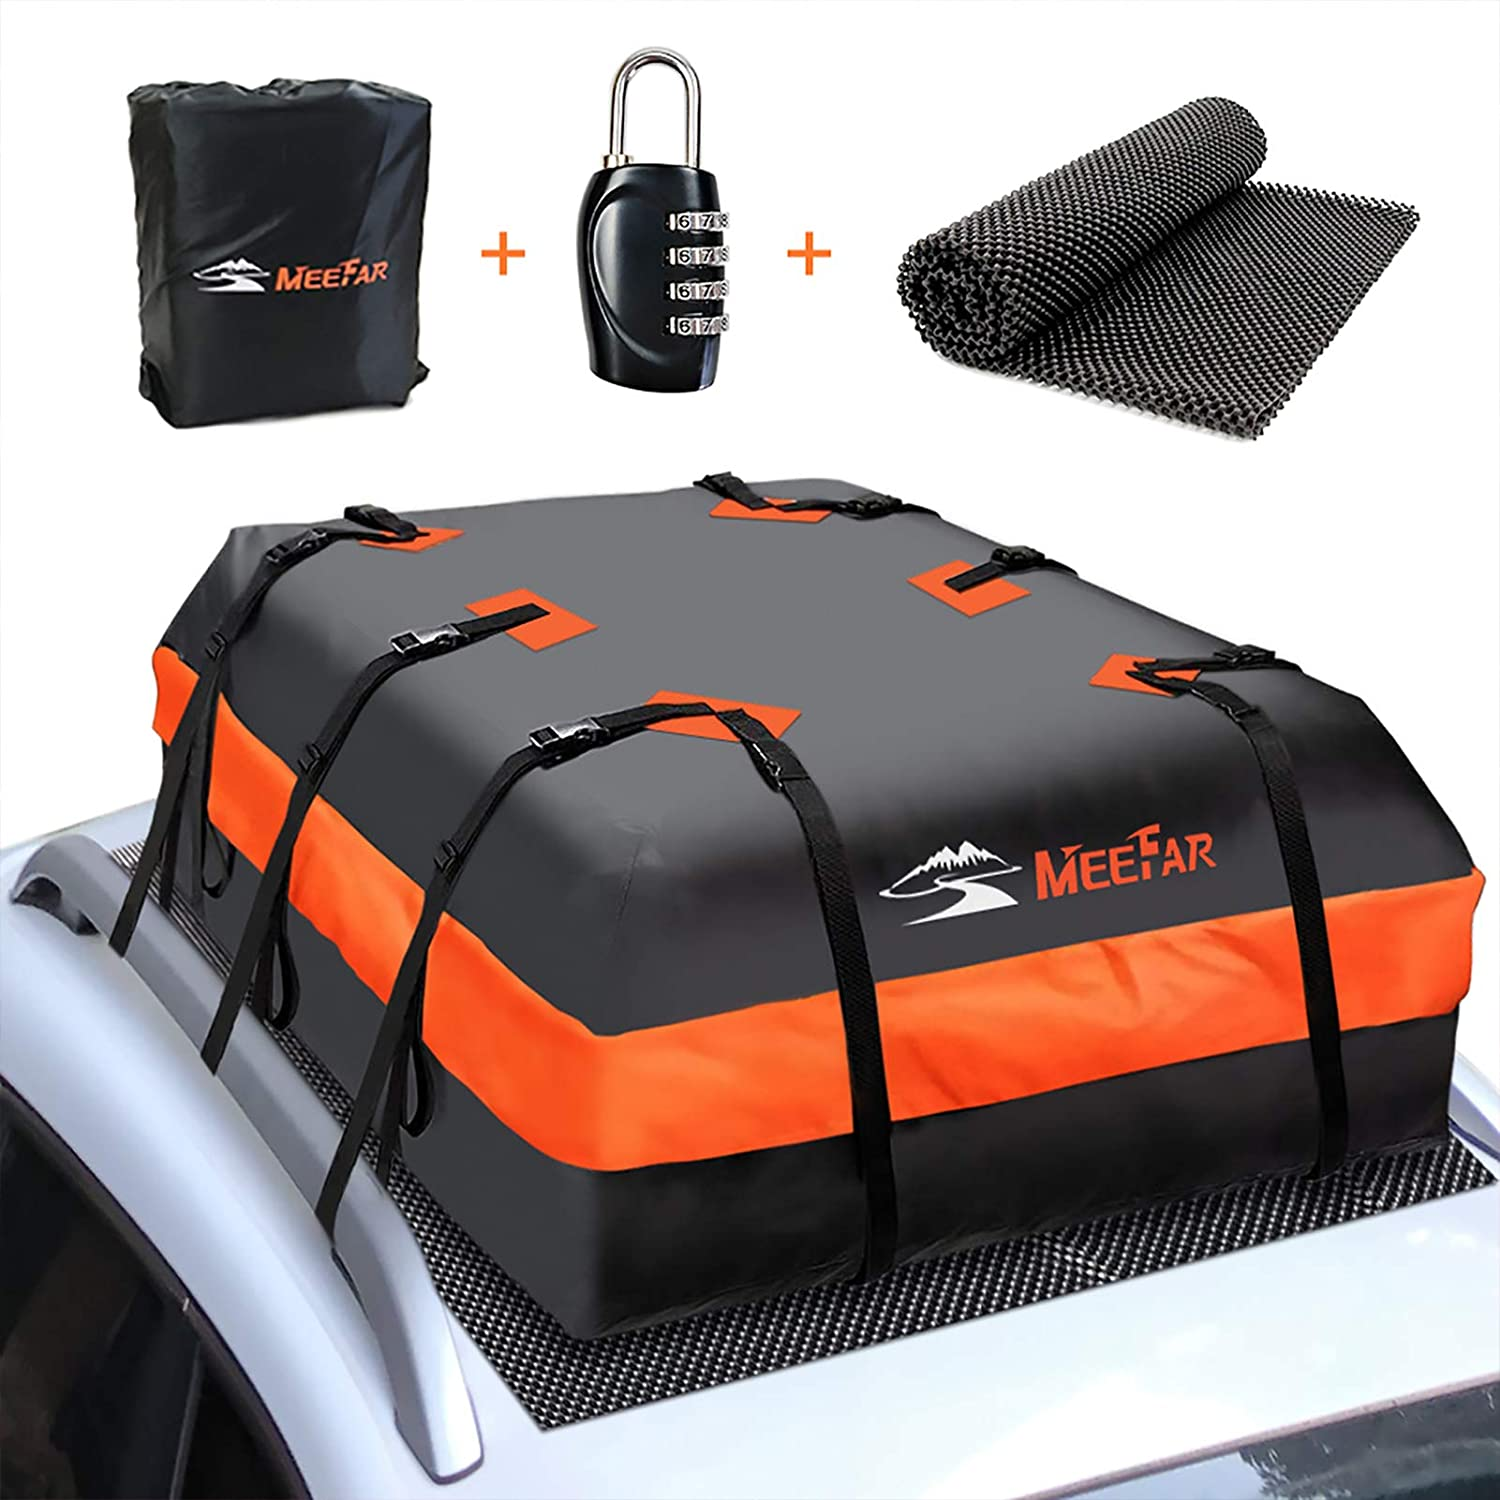 MeeFar Car Roof Bag XBEEK Rooftop top Cargo Carrier Bag 20 Cubic feet Waterproof for All Cars with/Without Rack, Includes Anti-Slip Mat, 10 Reinforced Straps, 6 Door Hooks, Luggage Lock : Automotive